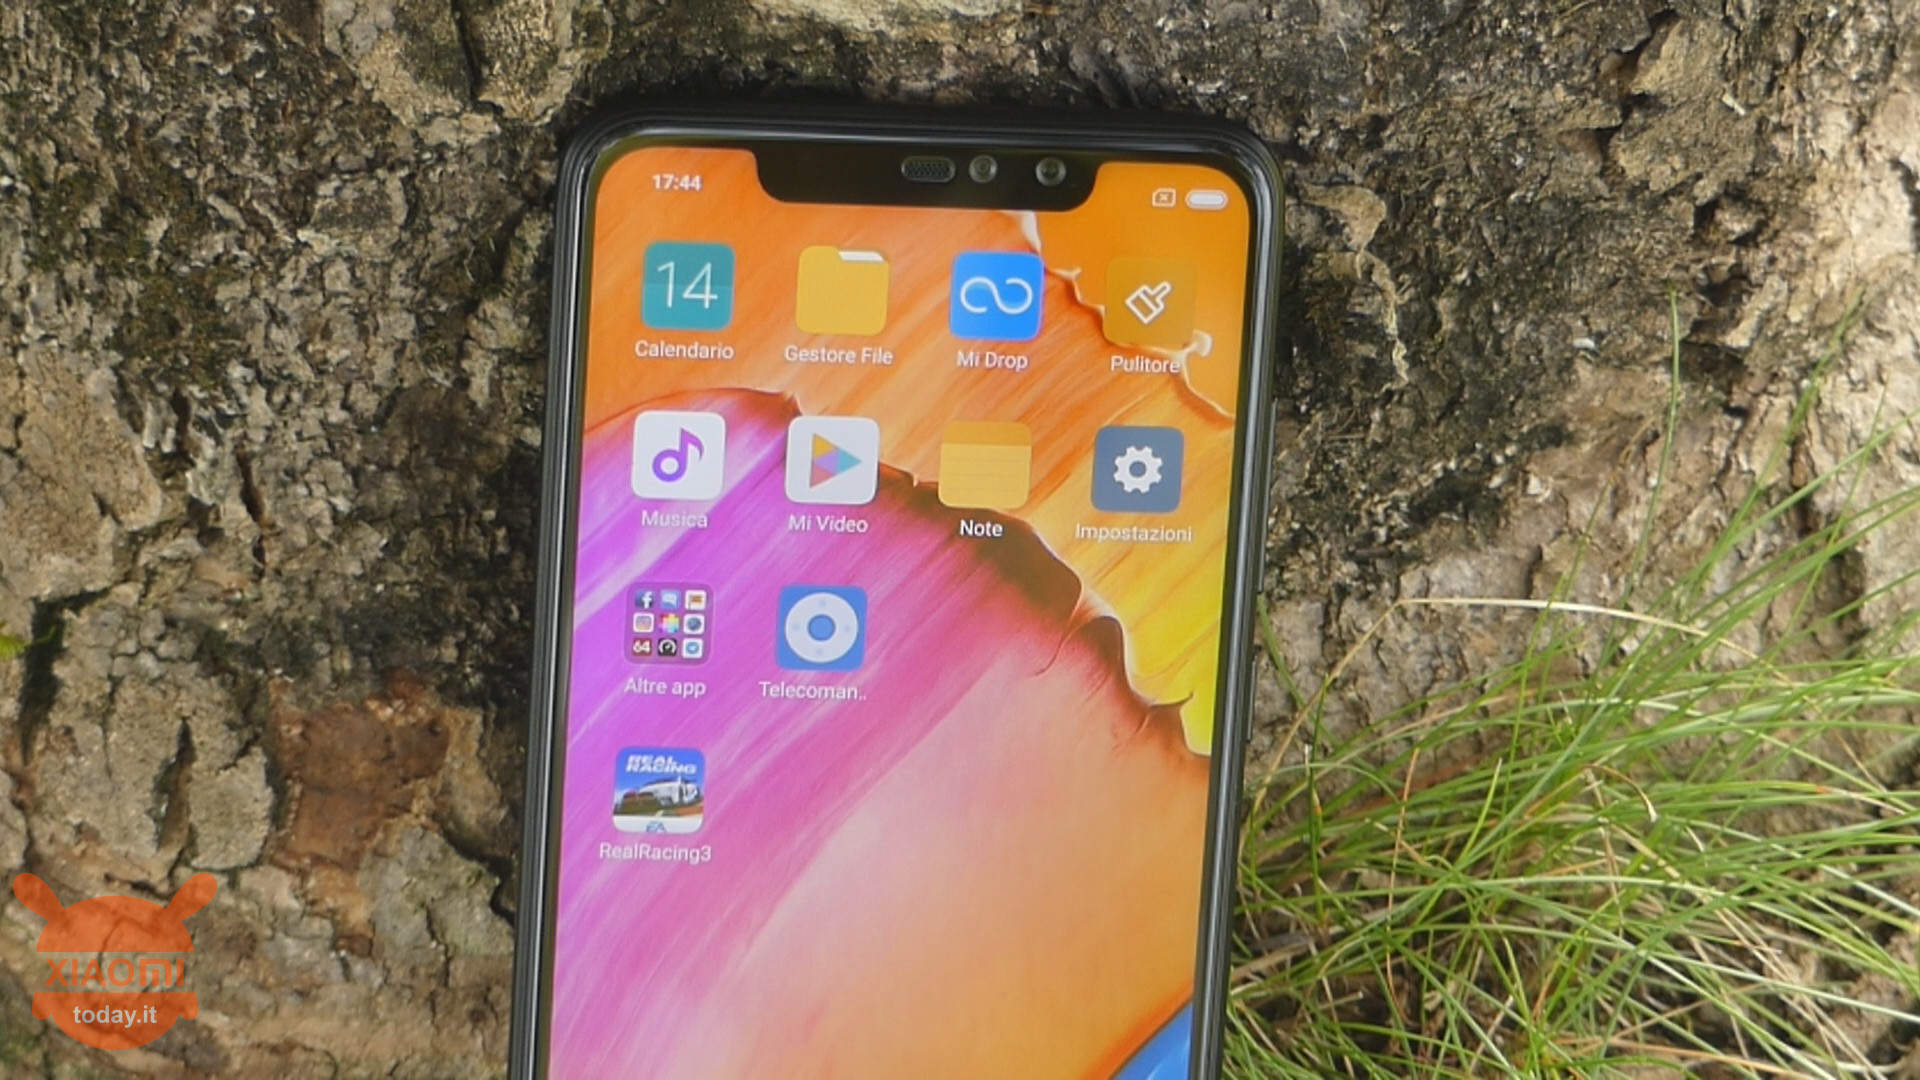 Calendario Xiaomi.Data Sheet Xiaomi Redmi Notes 6 Pro Xiaomitoday It The